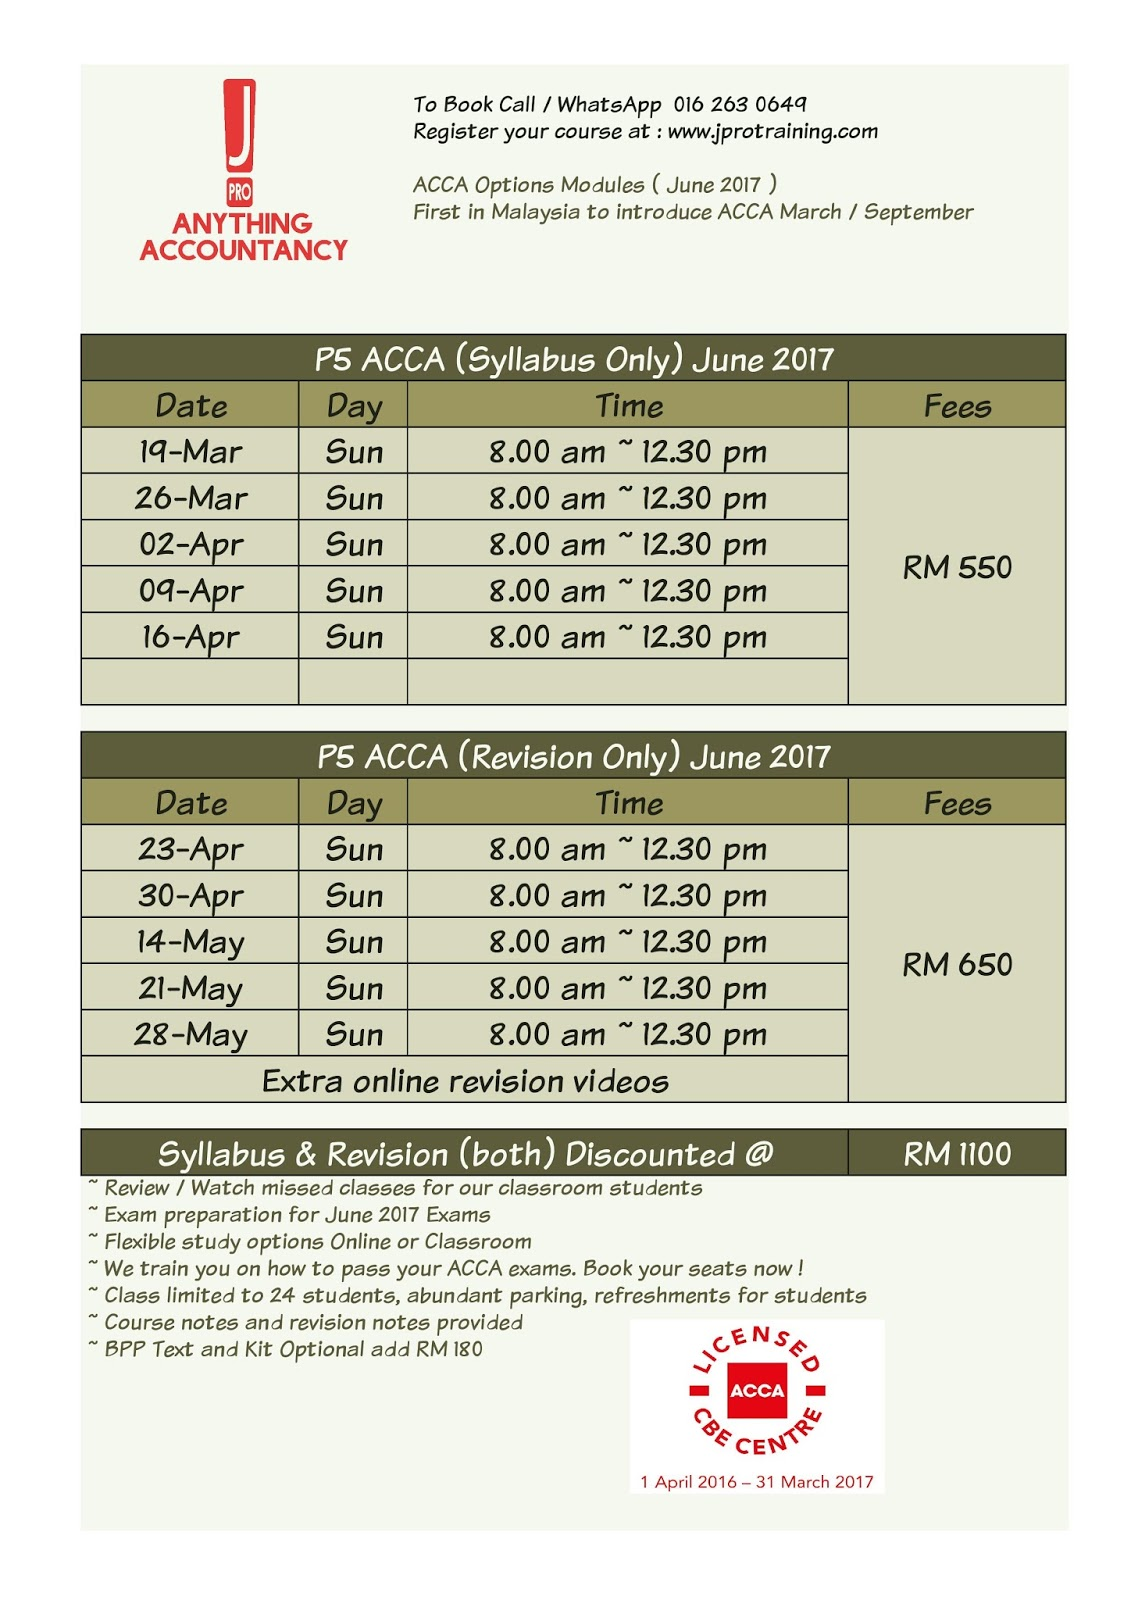 Jay's ACCA APM / ACCA AFM Discussion Room